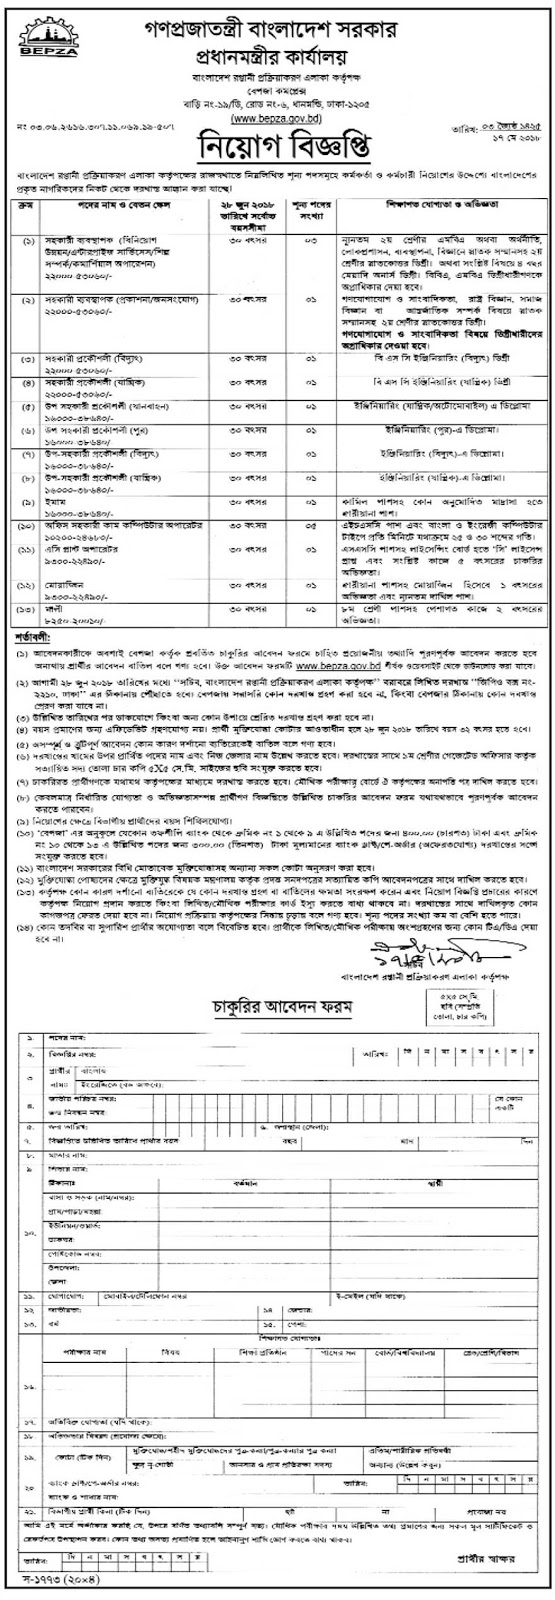 BEPZA - Bangladesh Export Processing Zones Authority Job Circular 2018